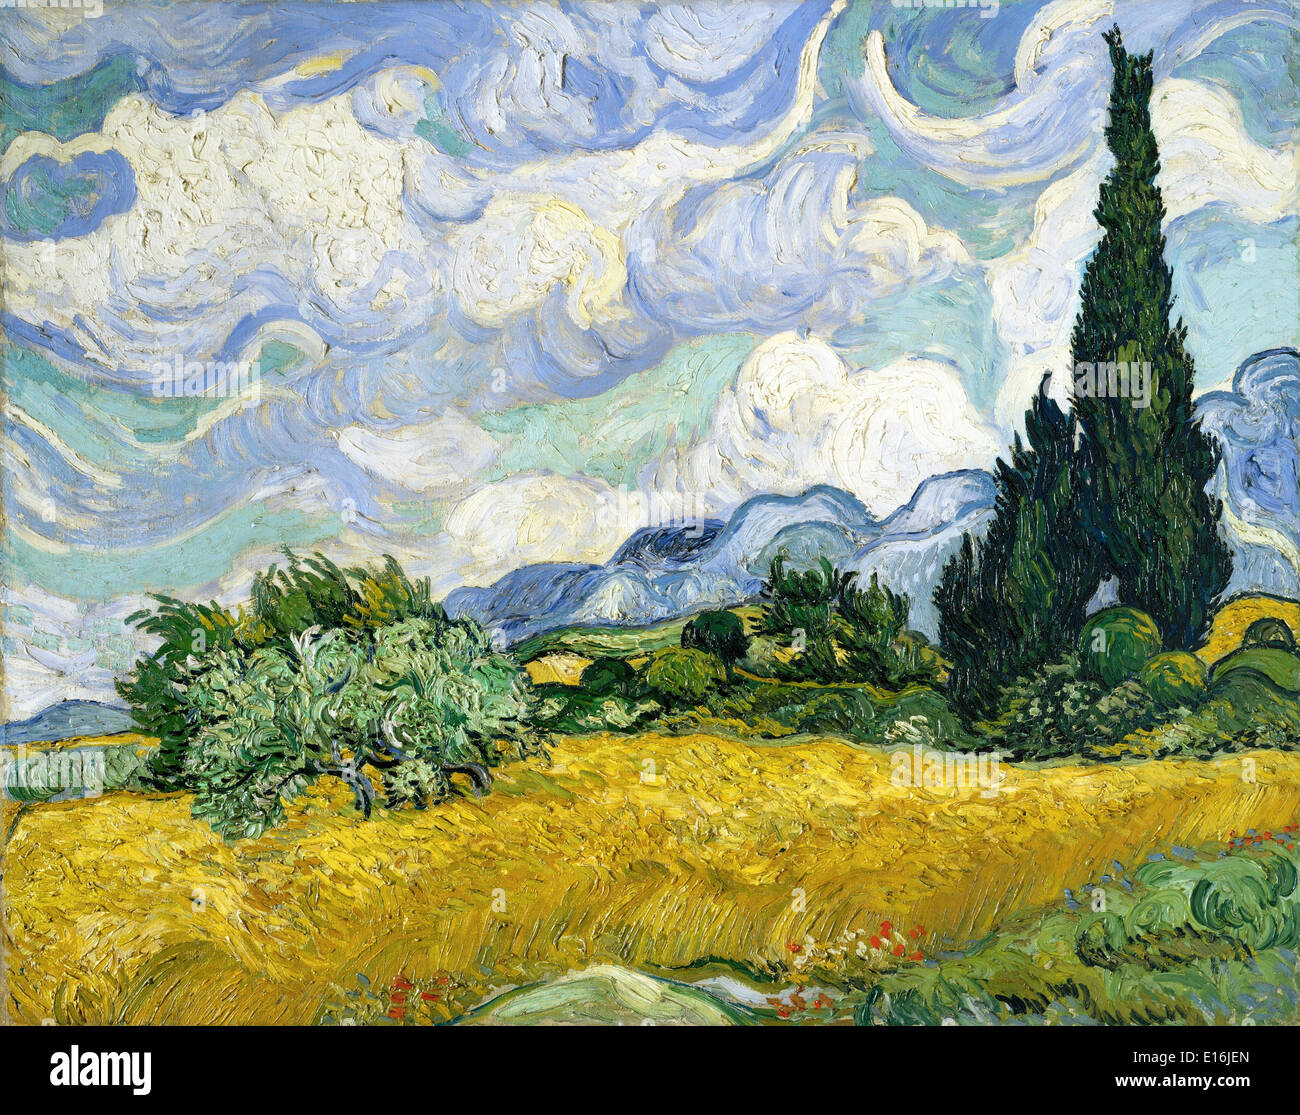 Wheat Field with Cypresses by Vincent Van Gogh, 1889 - Stock Image